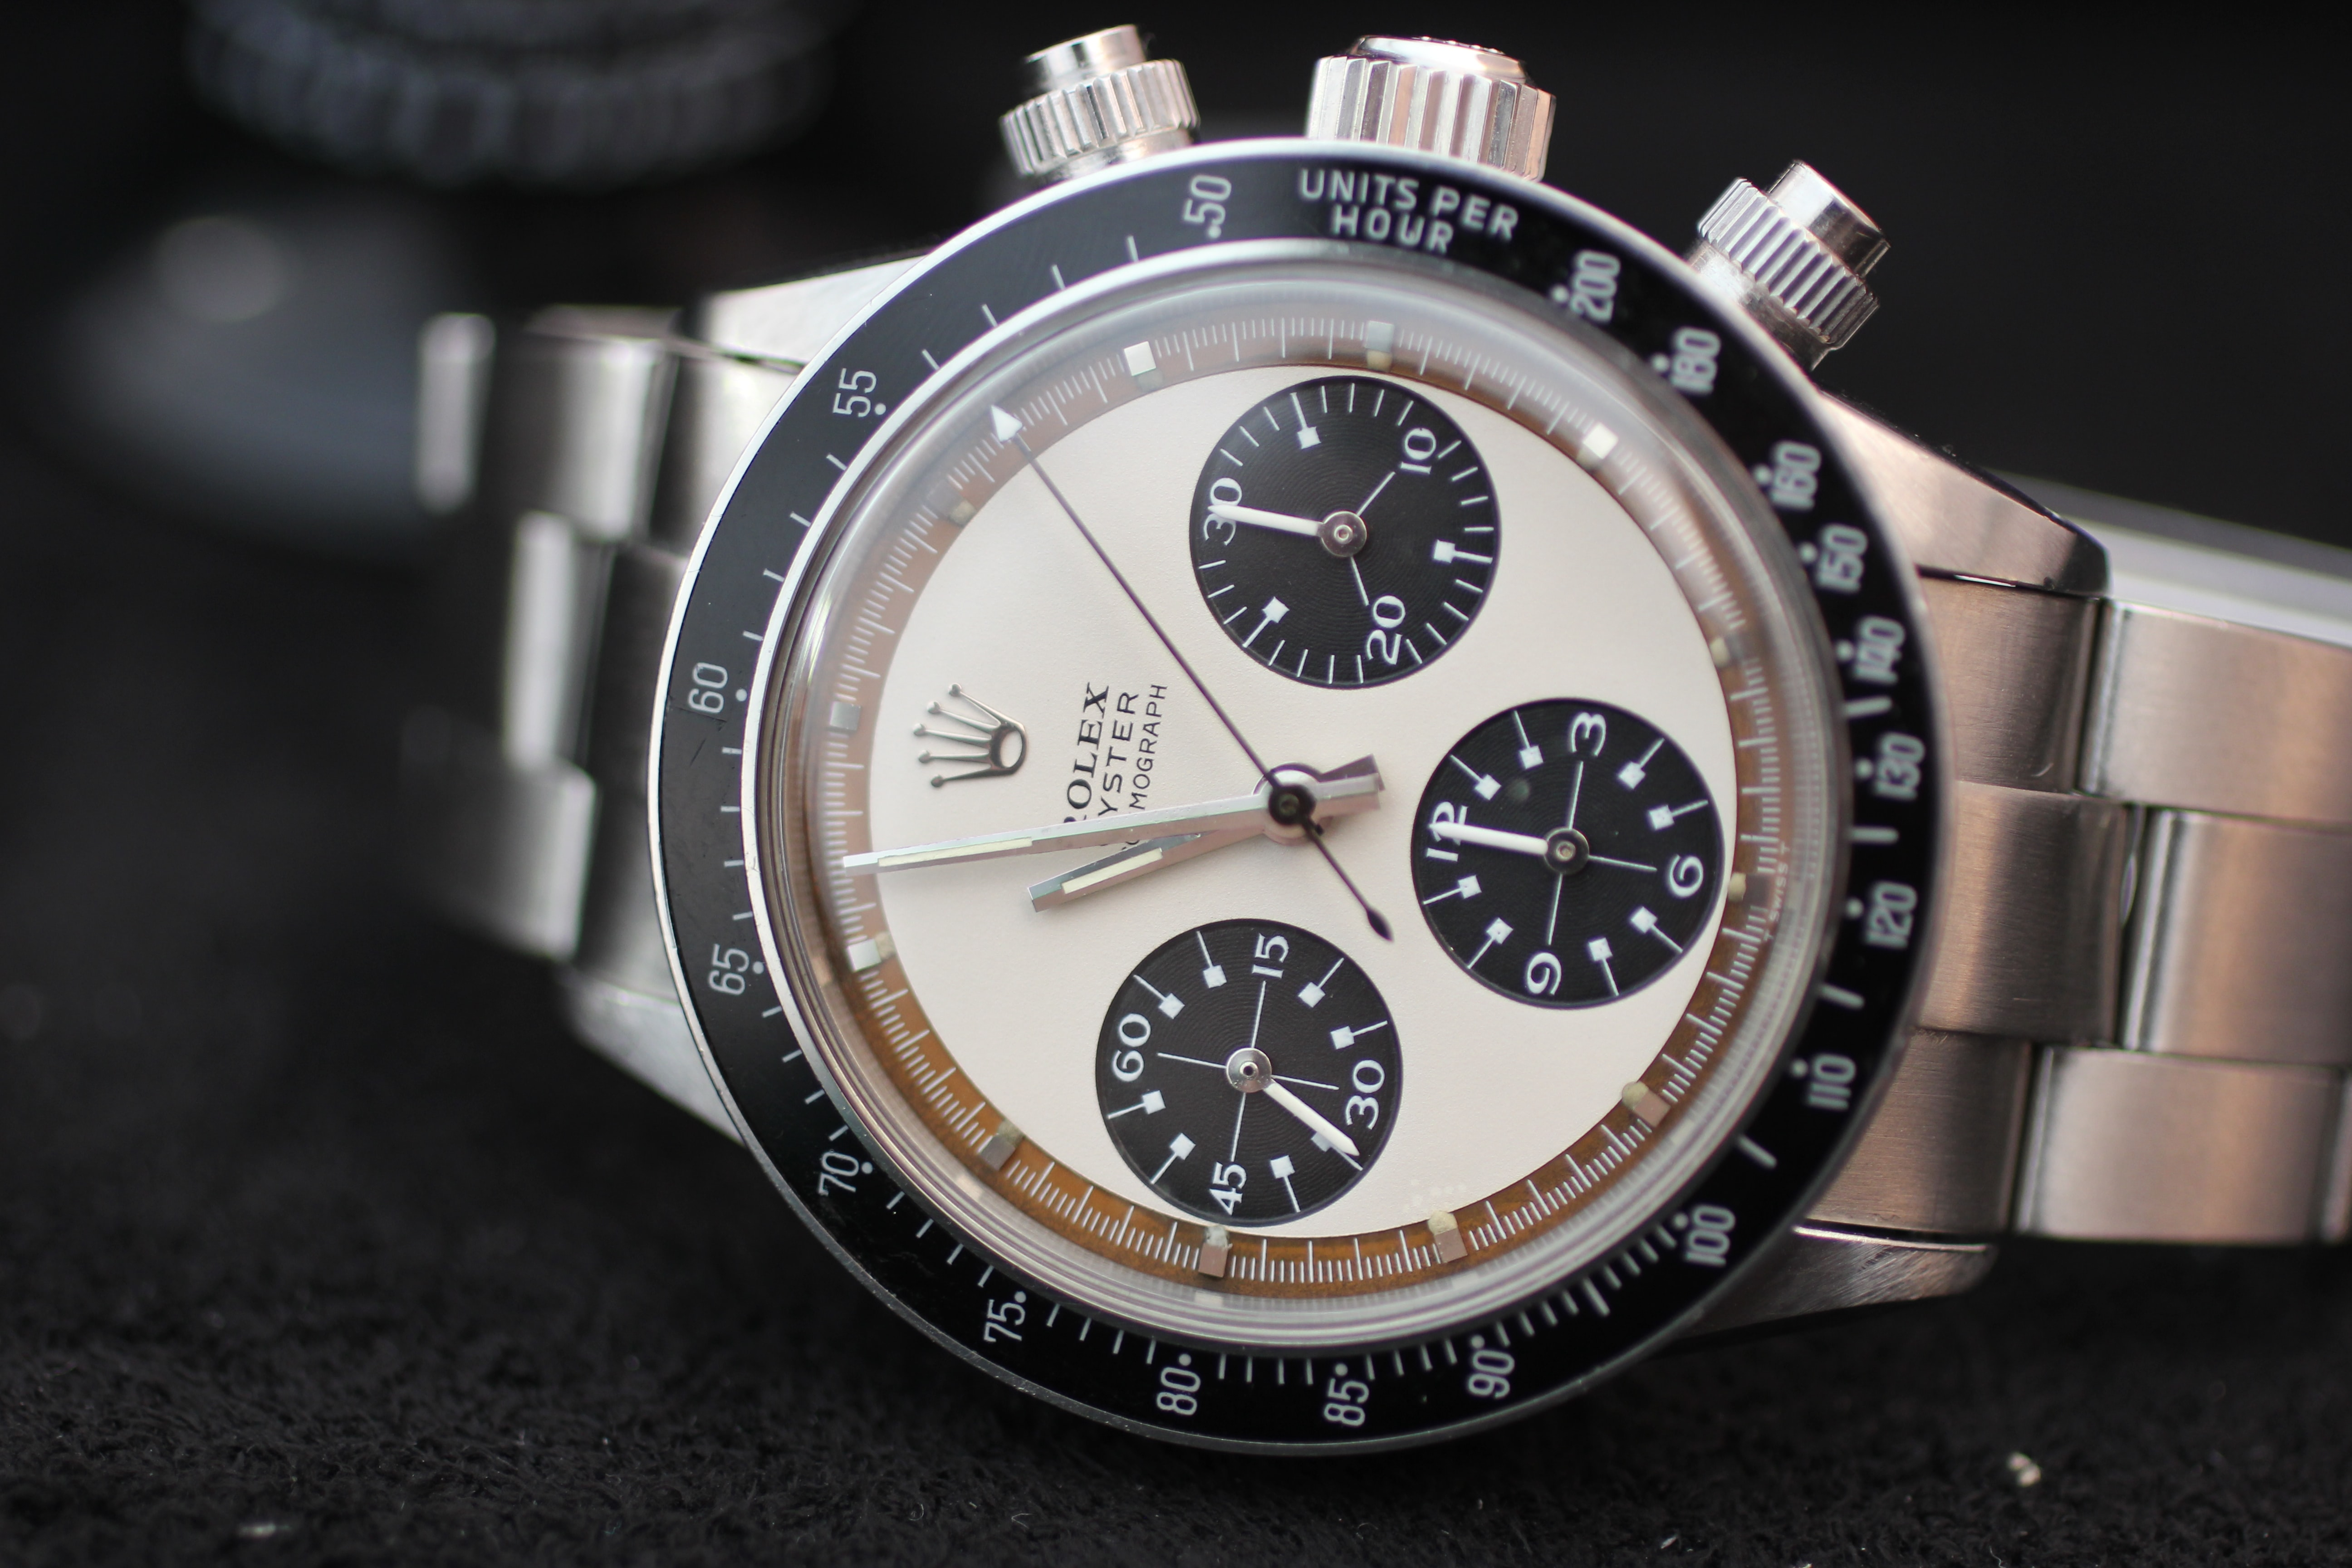 """Lot 34: Rolex Oyster Cosmograph, """"Paul Newman Panda"""" 6263; sold for CHF 929,000. Recapping The 88 Epic Stainless Steel Chronographs Sale At Phillips, A 100% Auction, With Several Massive Hits, Strong Showing From Niche Brands Recapping The 88 Epic Stainless Steel Chronographs Sale At Phillips, A 100% Auction, With Several Massive Hits, Strong Showing From Niche Brands Lot 34 Rolex Oyster Cosmograph Paul Newman Panda 6263 inside caseback stamped 6239 Stainless steel 1969"""